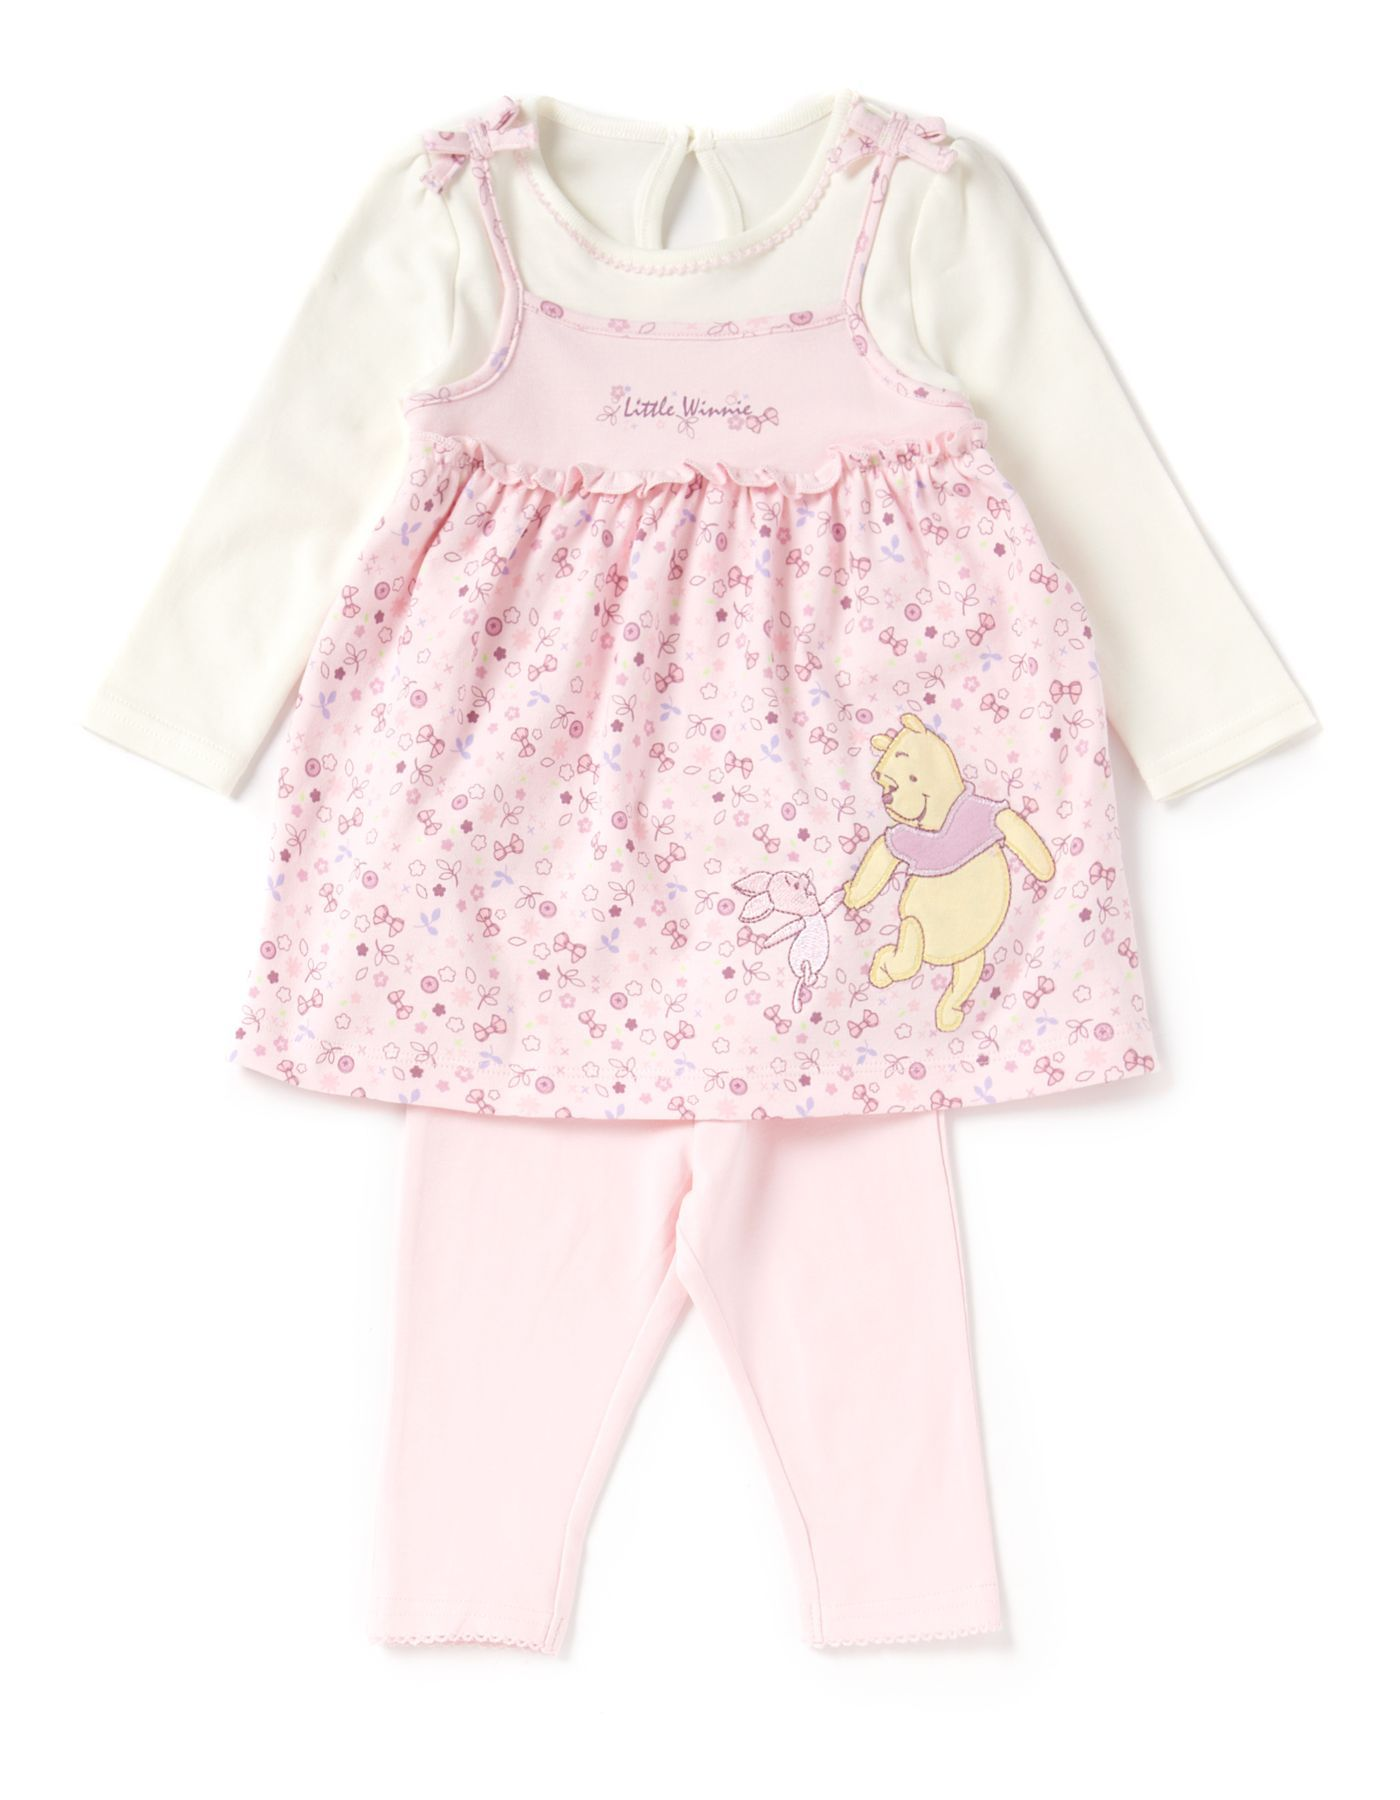 Winnie the Pooh Baby Dress and Leggings George at ASDA